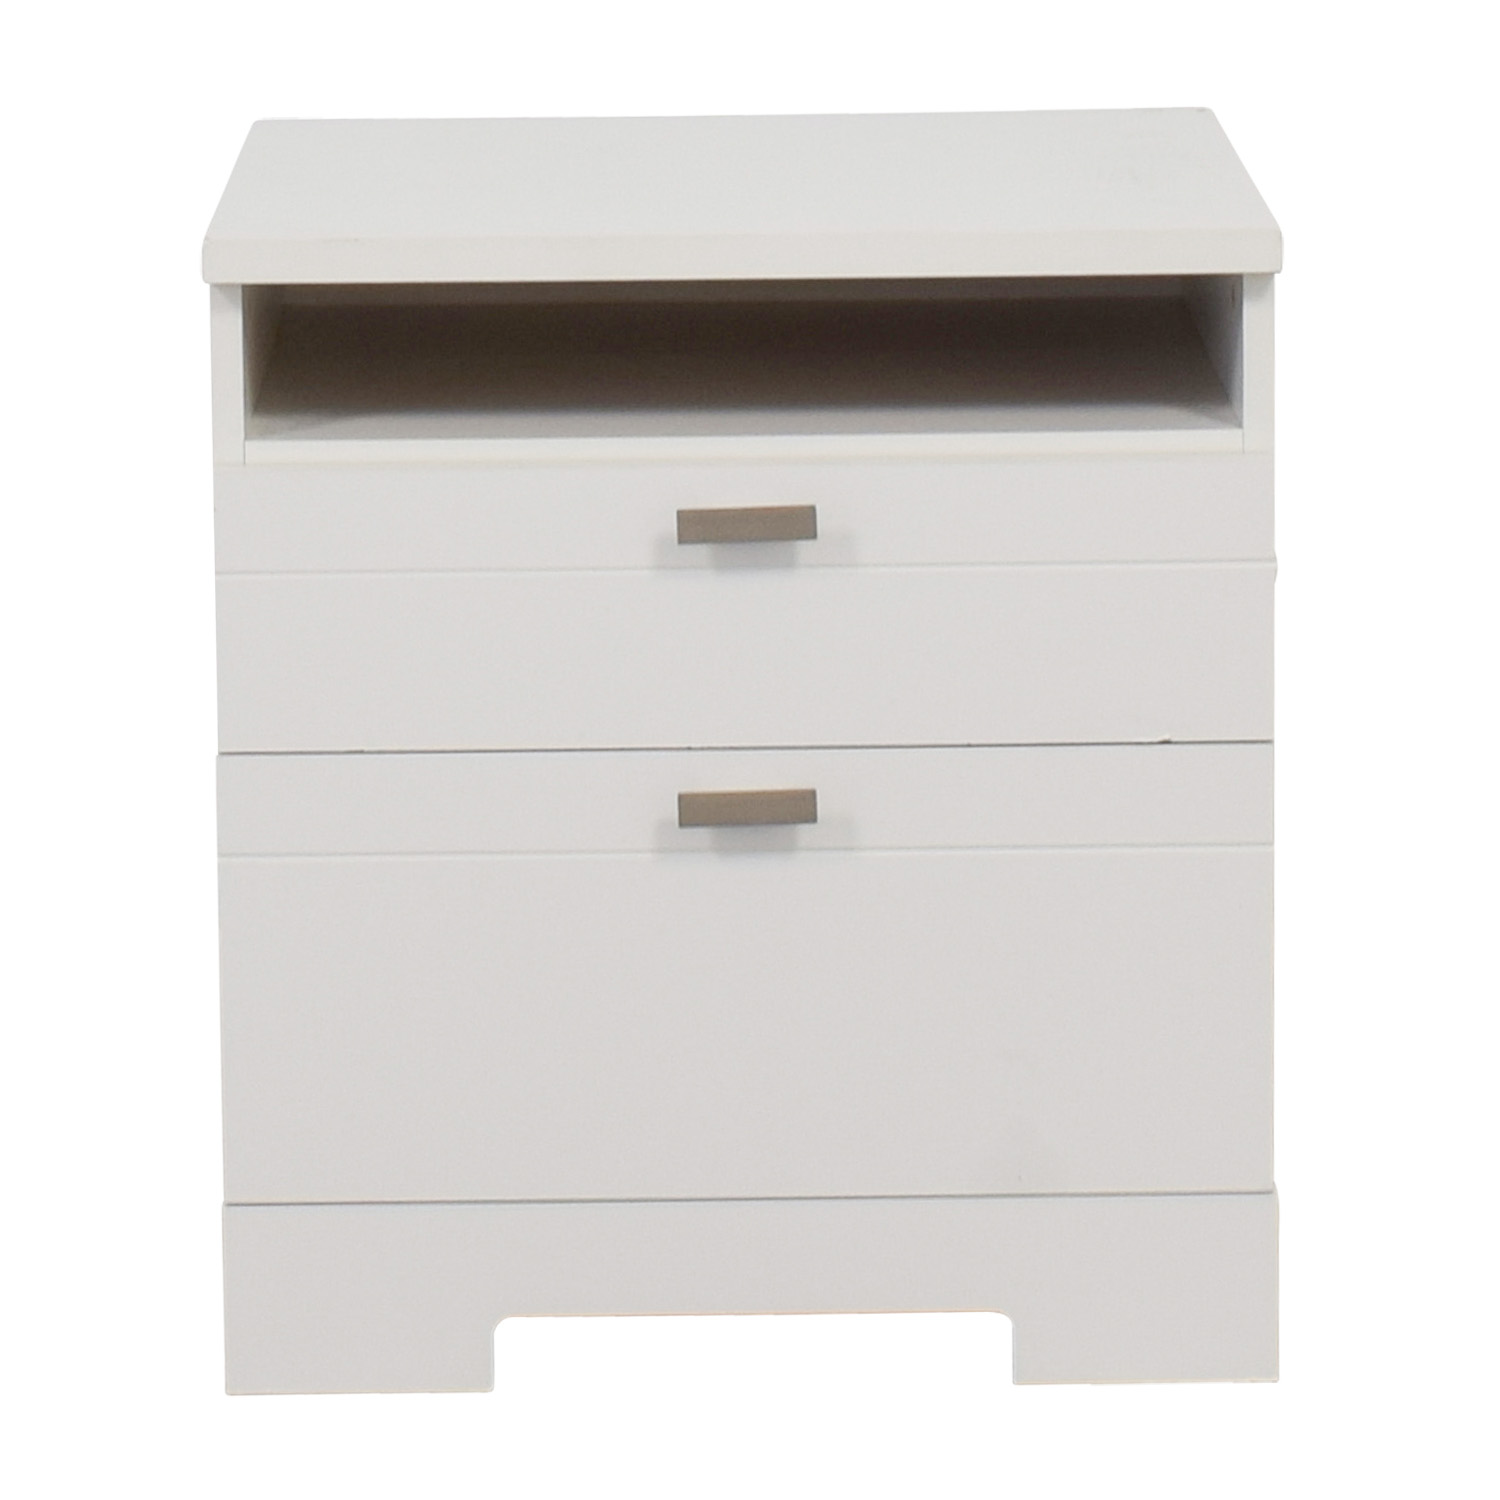 South Shore Reevo White Two-Drawer Nightstand with Cord Catcher / End Tables